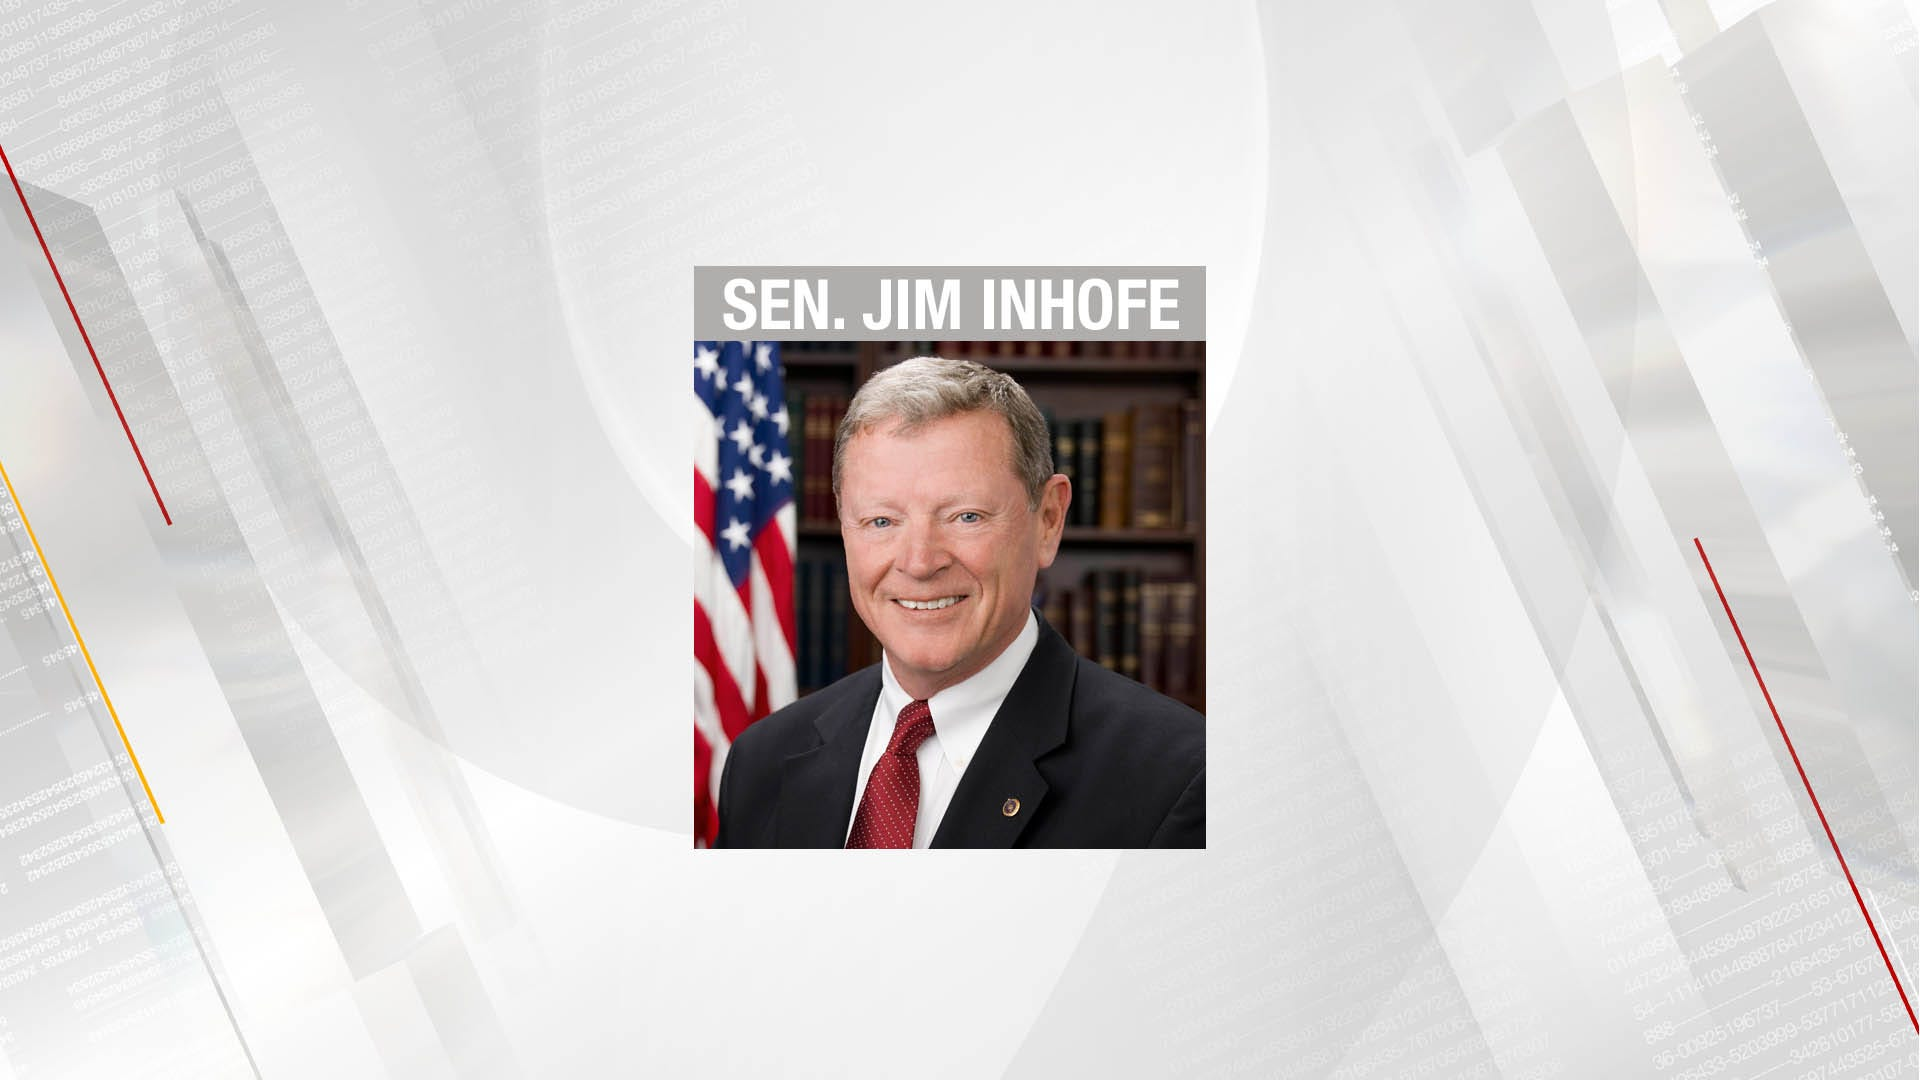 Inhofe Ends Pigeon Shoot, Animal Rights Group Celebrates